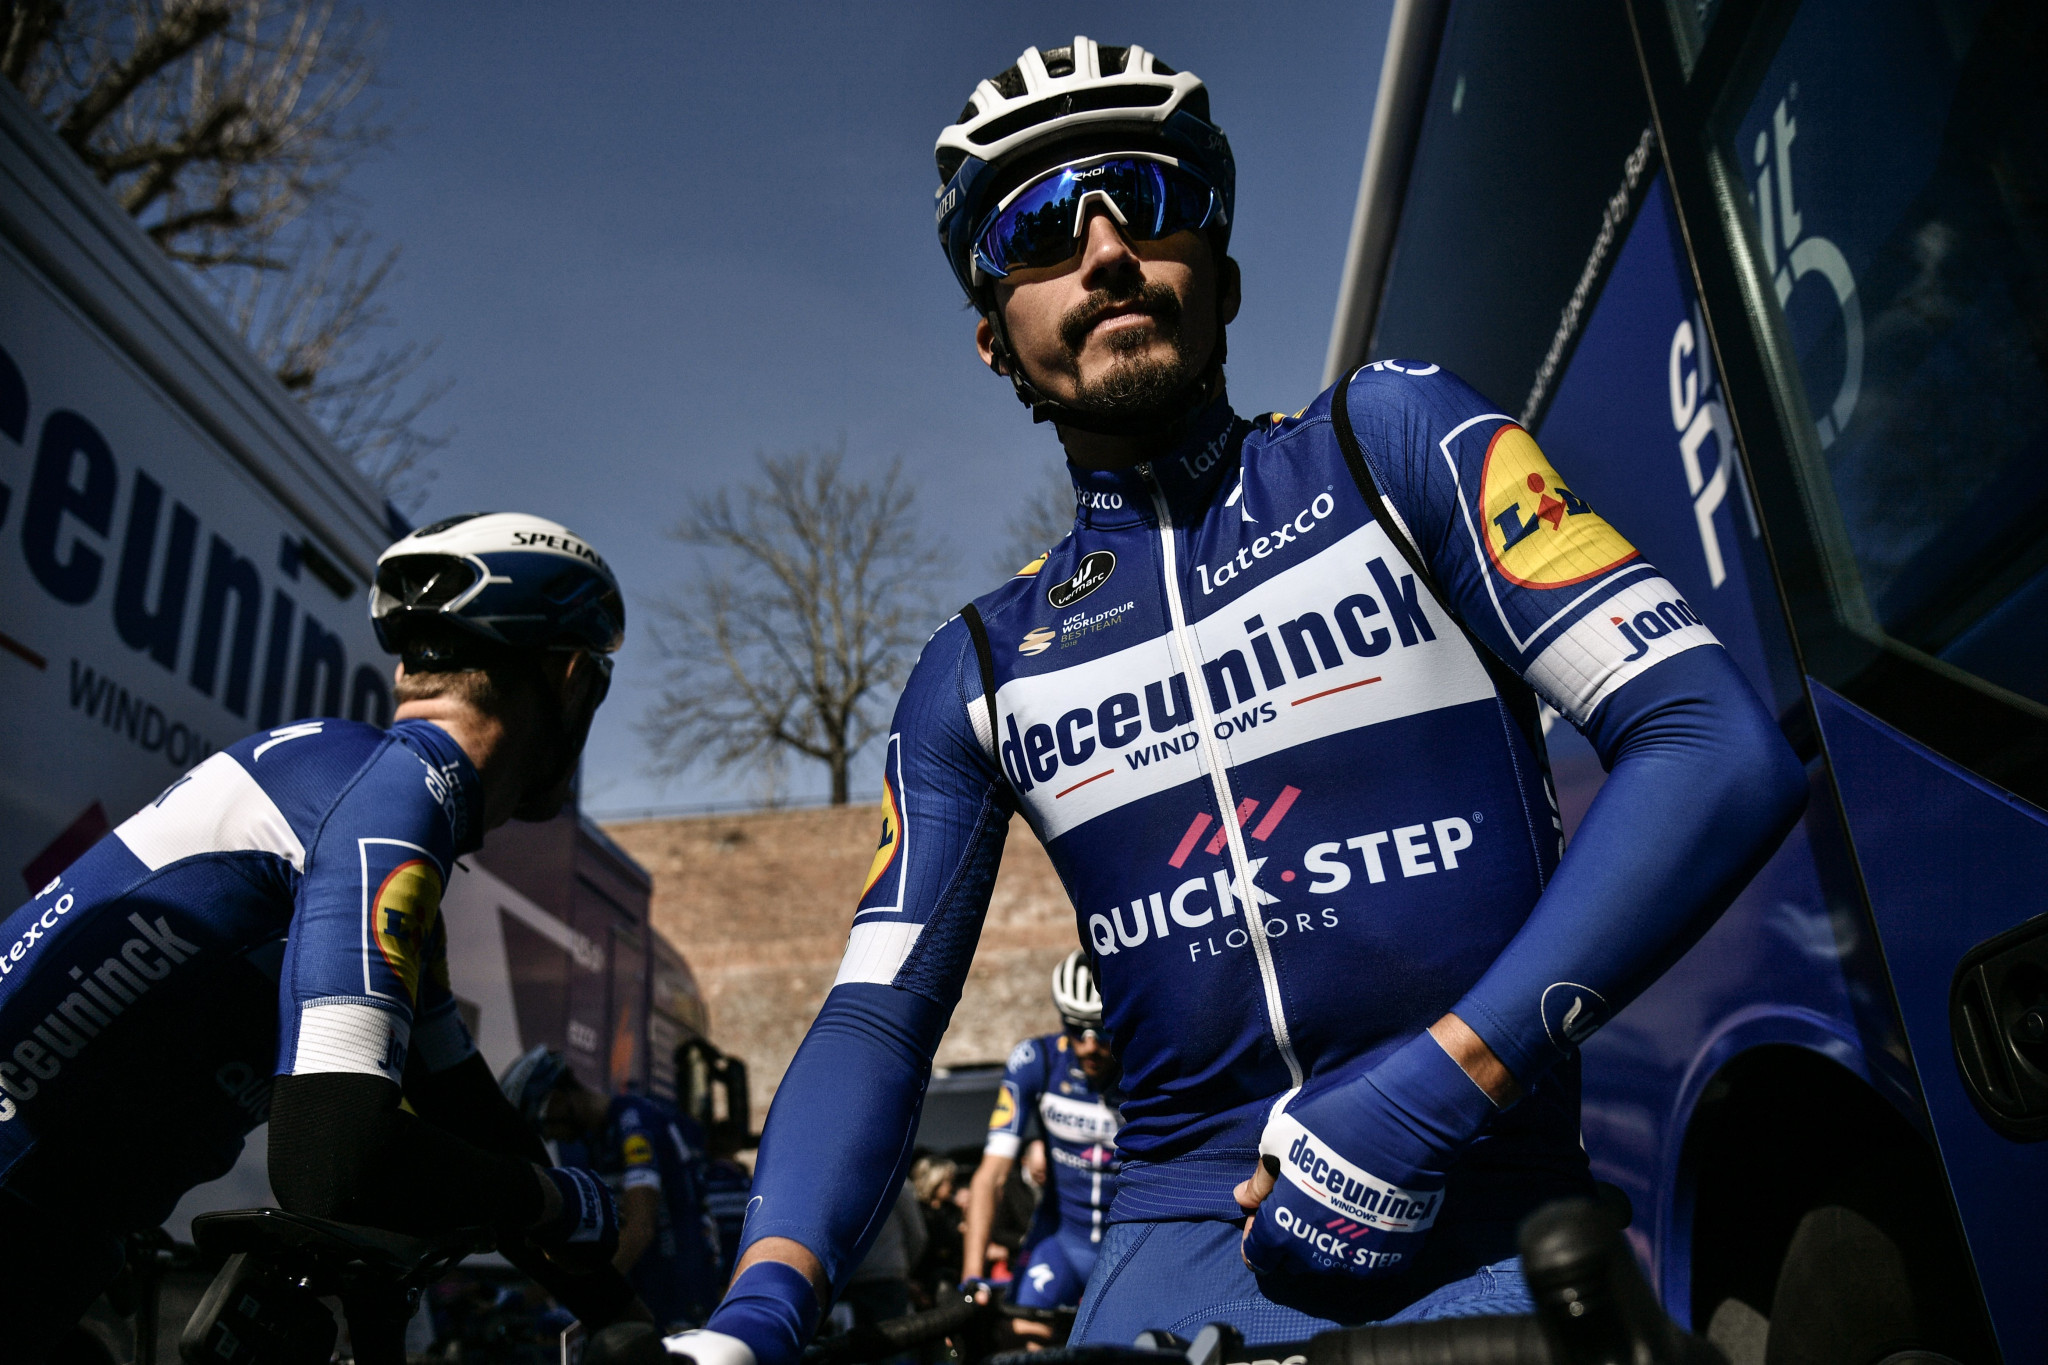 Alaphilippe continues fine form with stage two win at Tour of the Basque Country